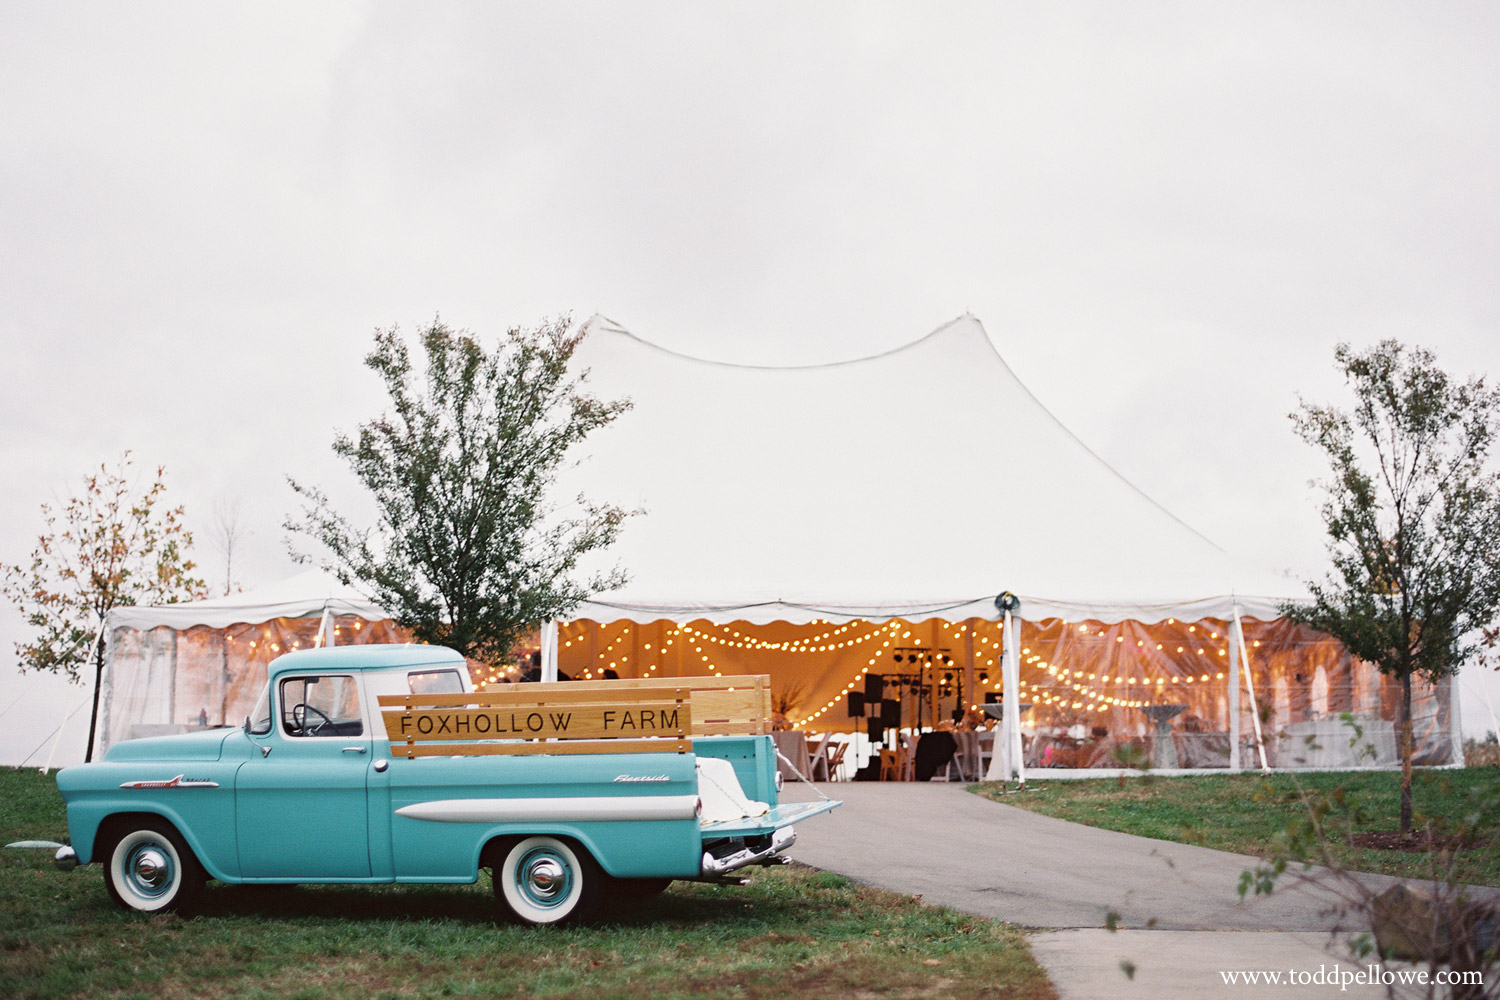 36-foxhollow-farm-kentucky-wedding-008.jpg